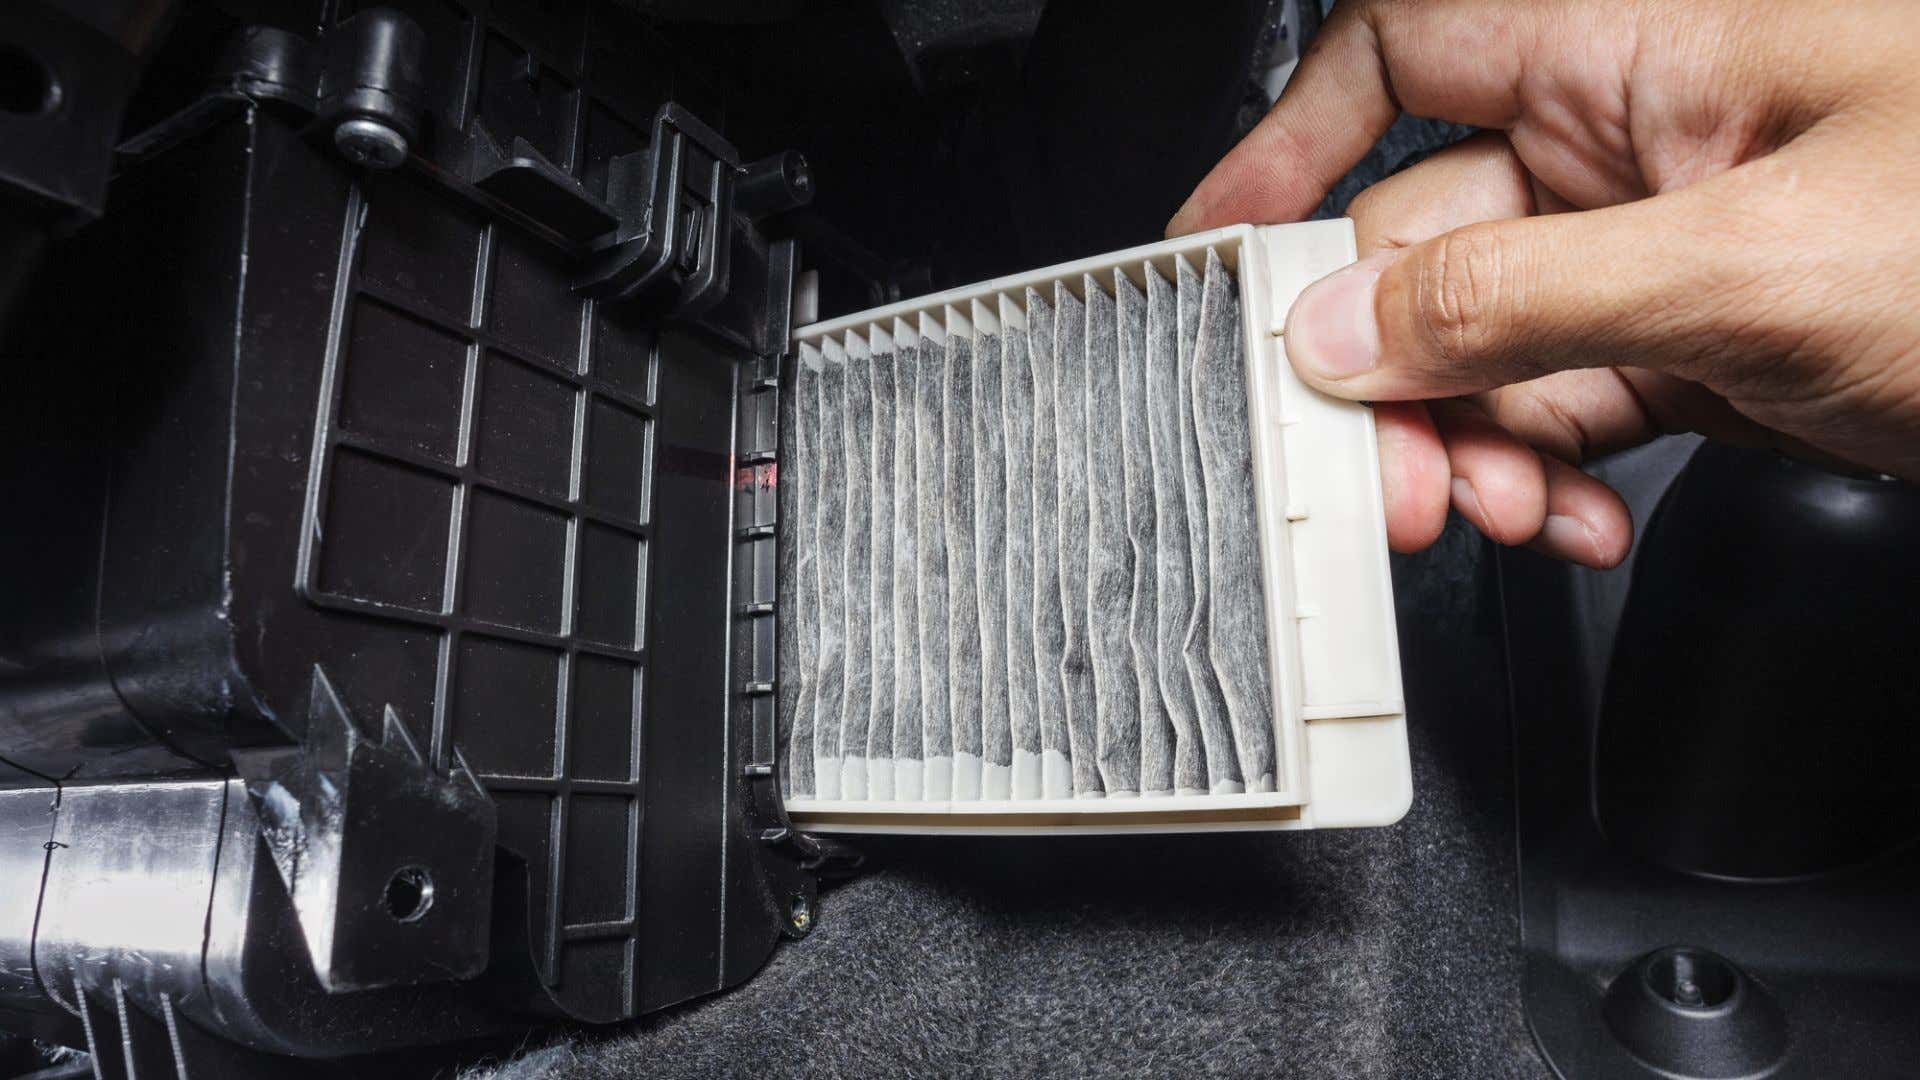 A cabin air filter being removed.